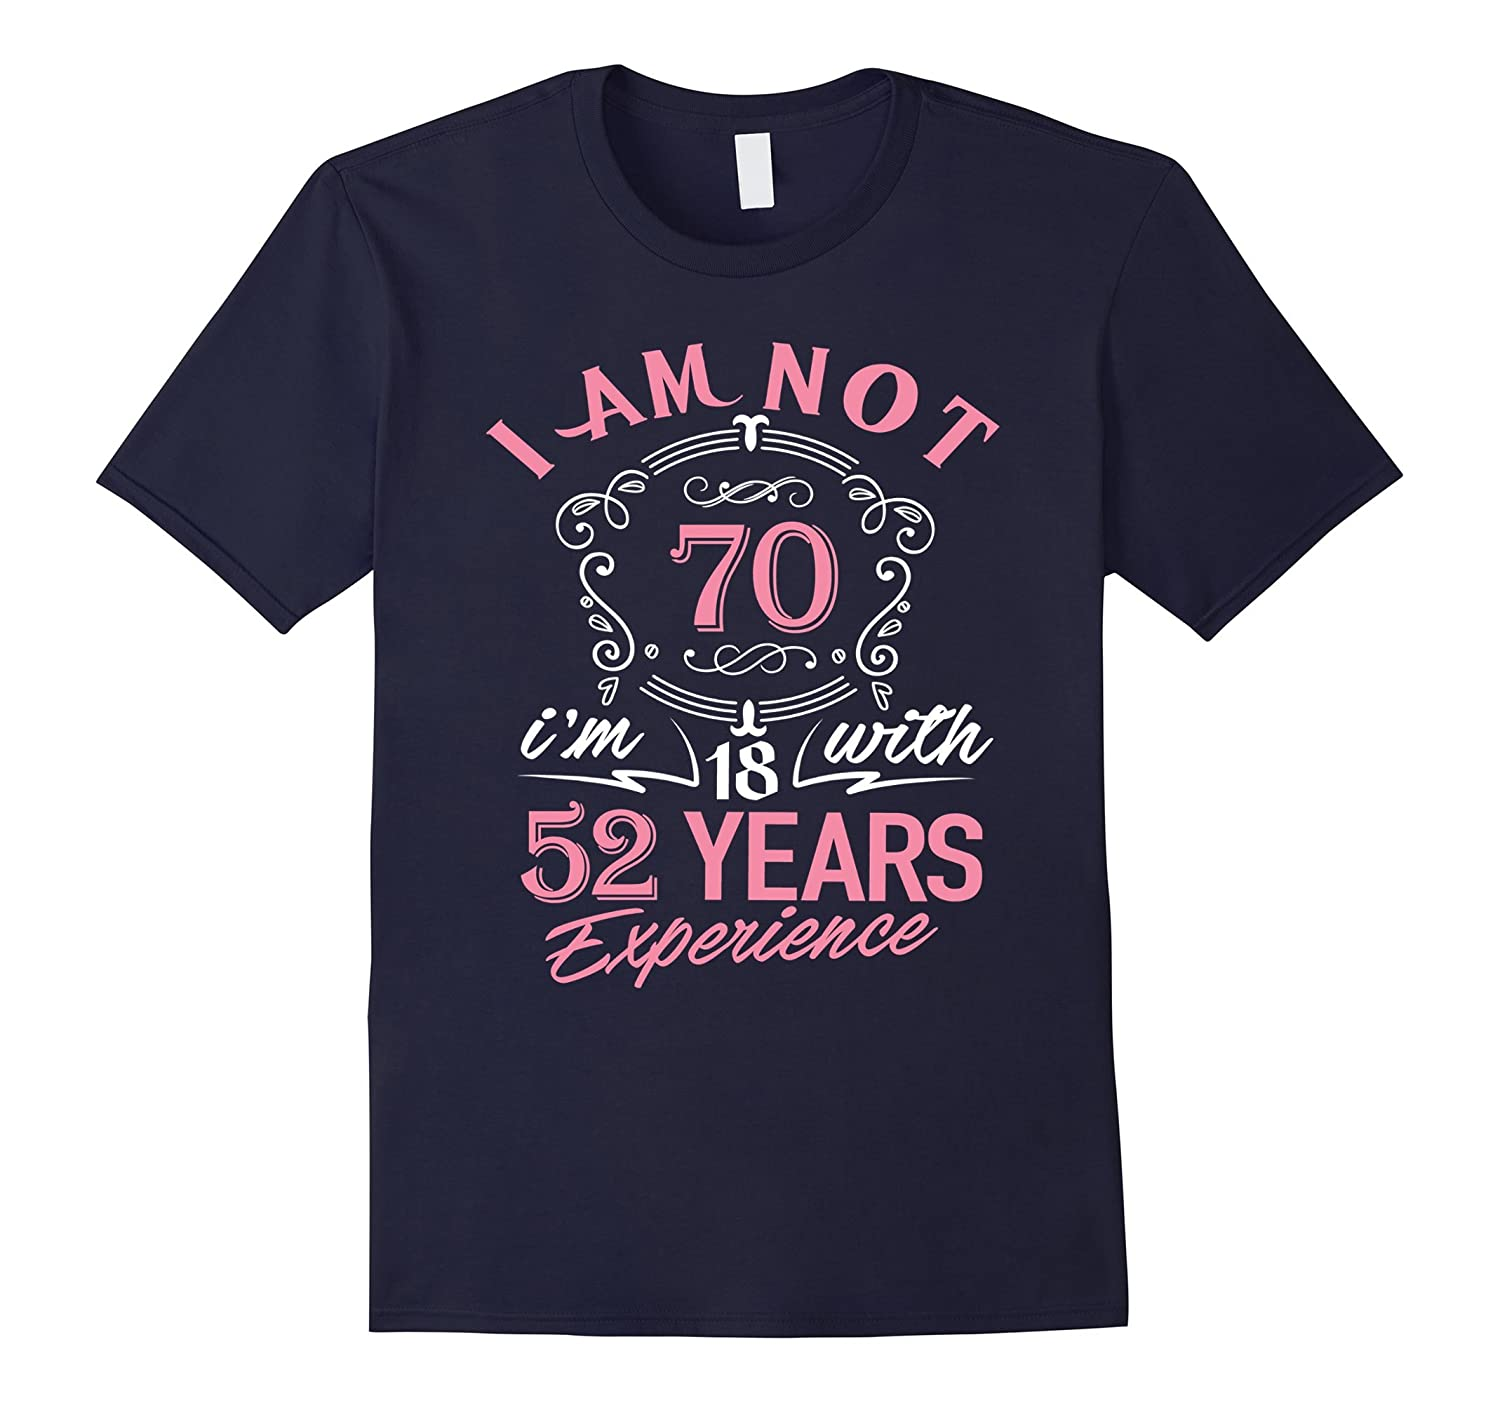 70th Birthday Gift T Shirt Im Not 70 Years Old Bday